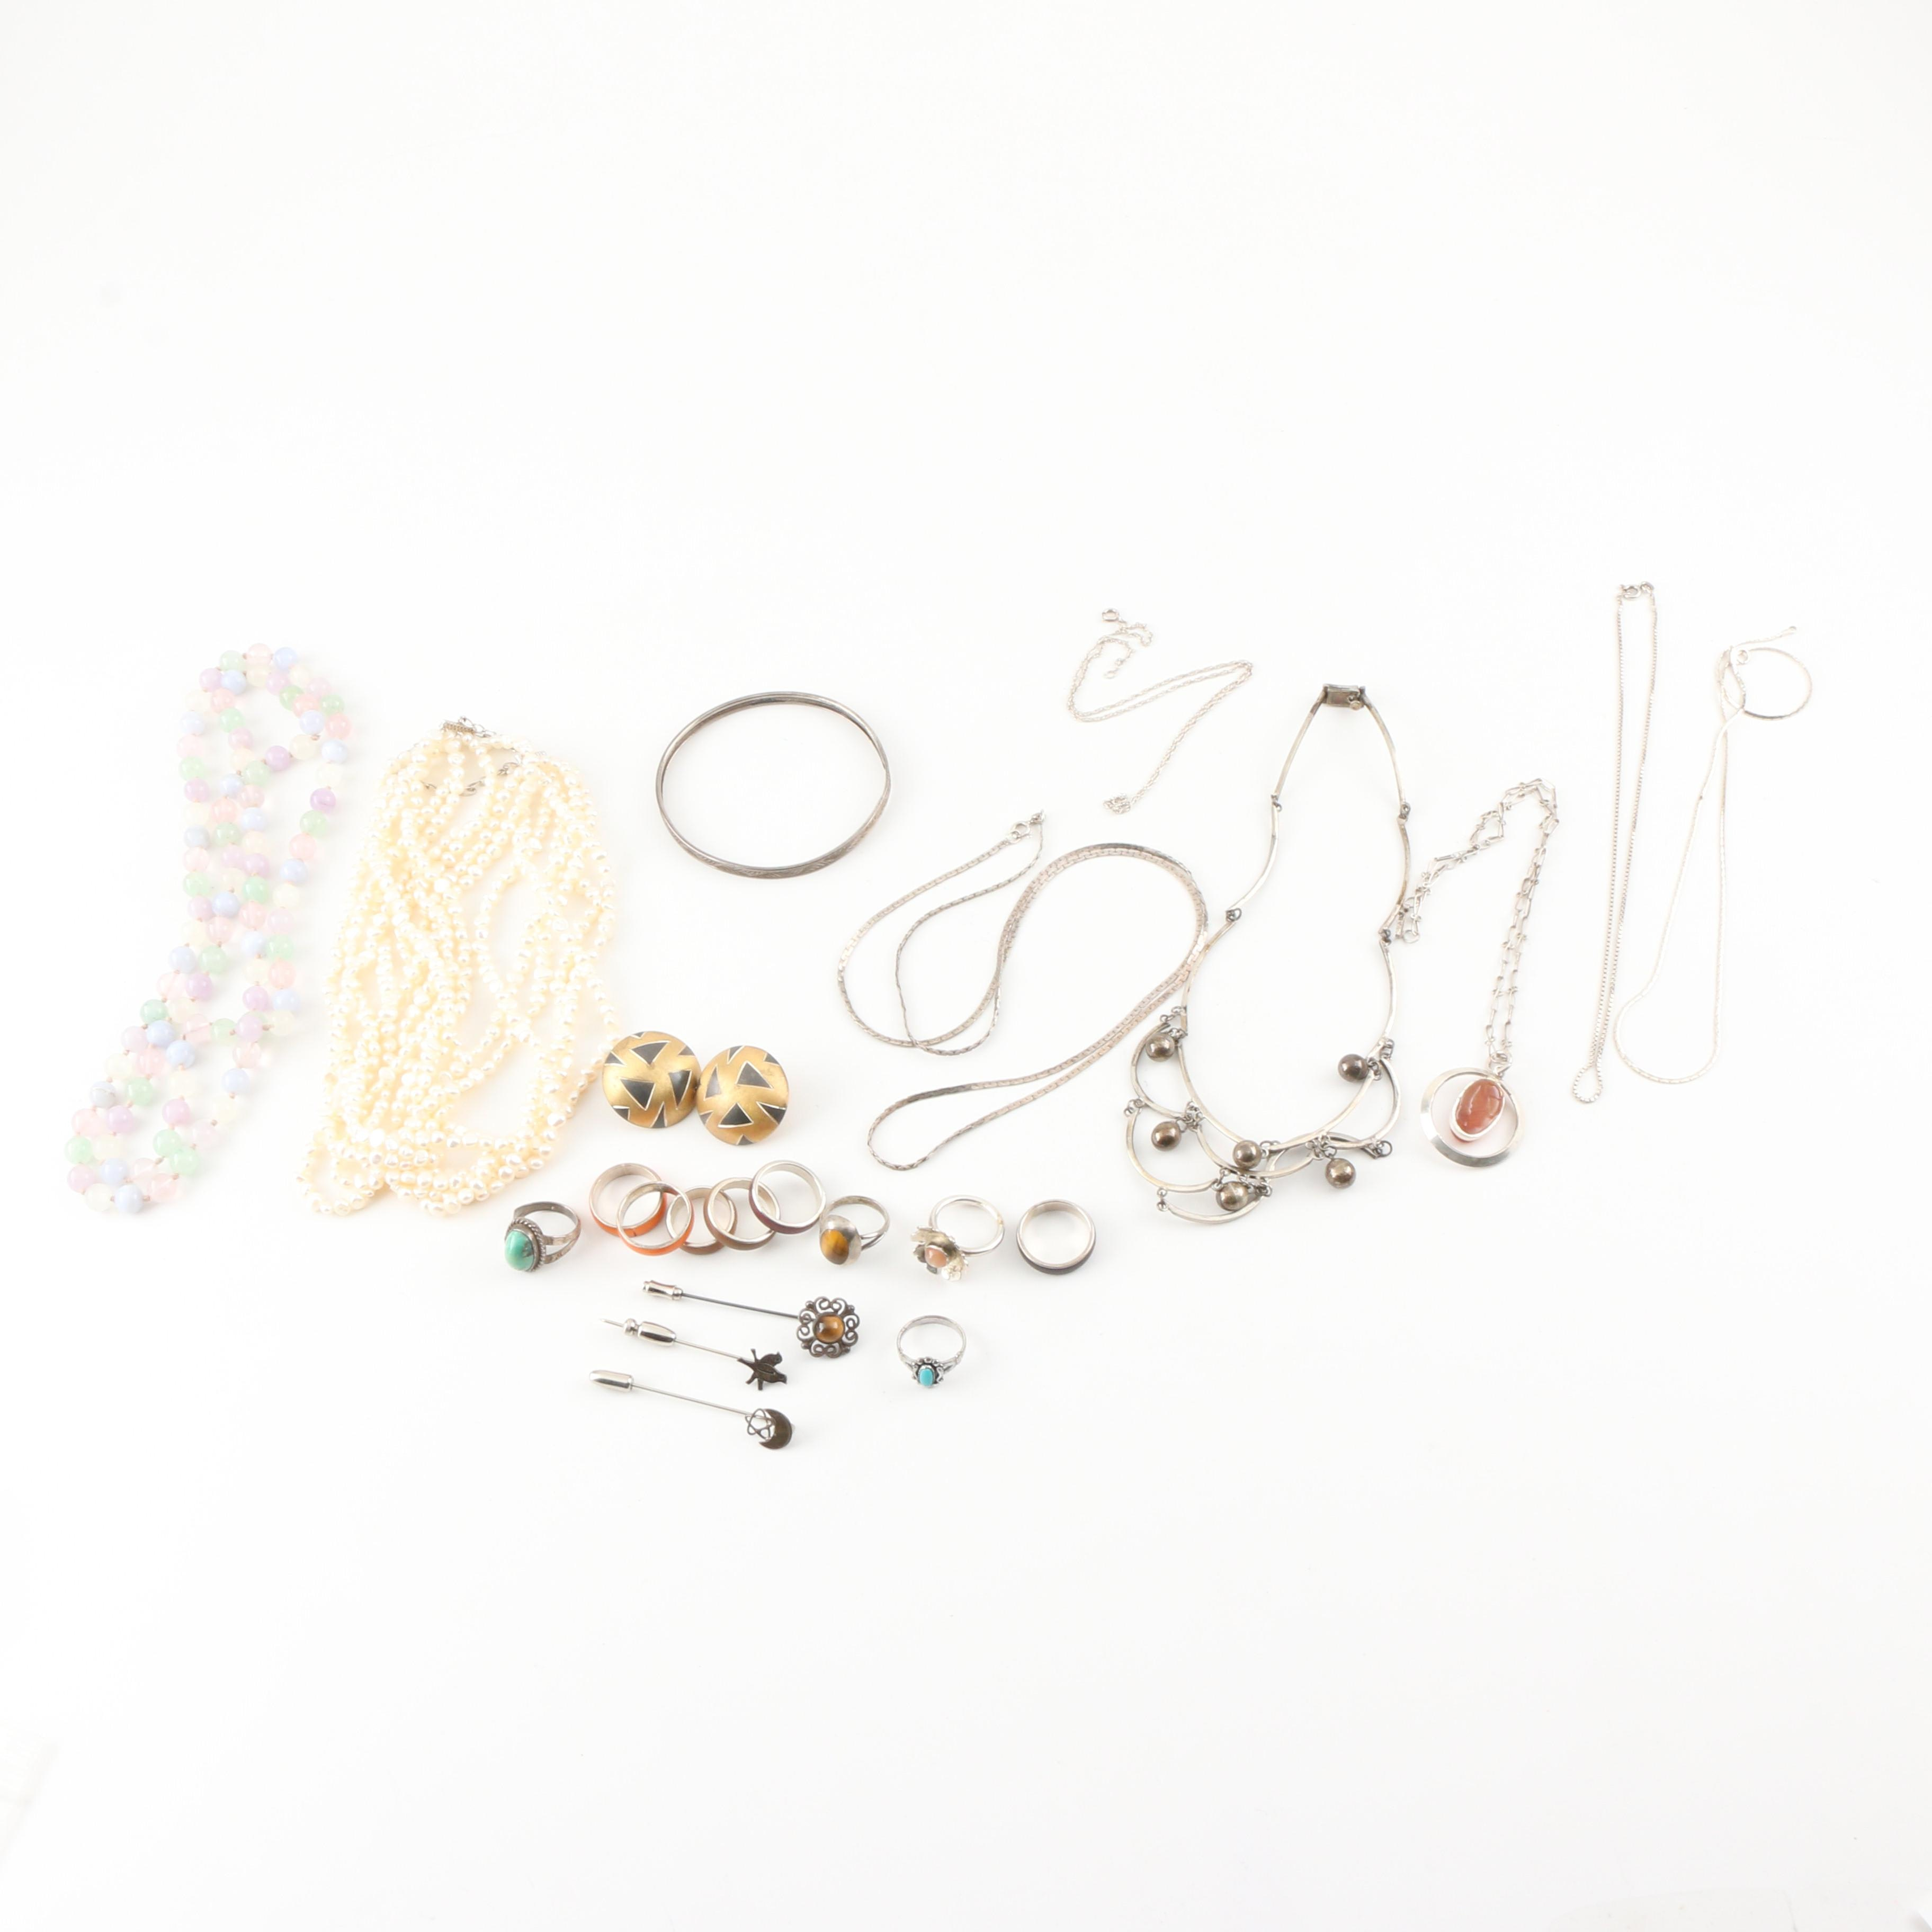 Assortment of Sterling Silver Jewelry Incuding Bell Trading Post